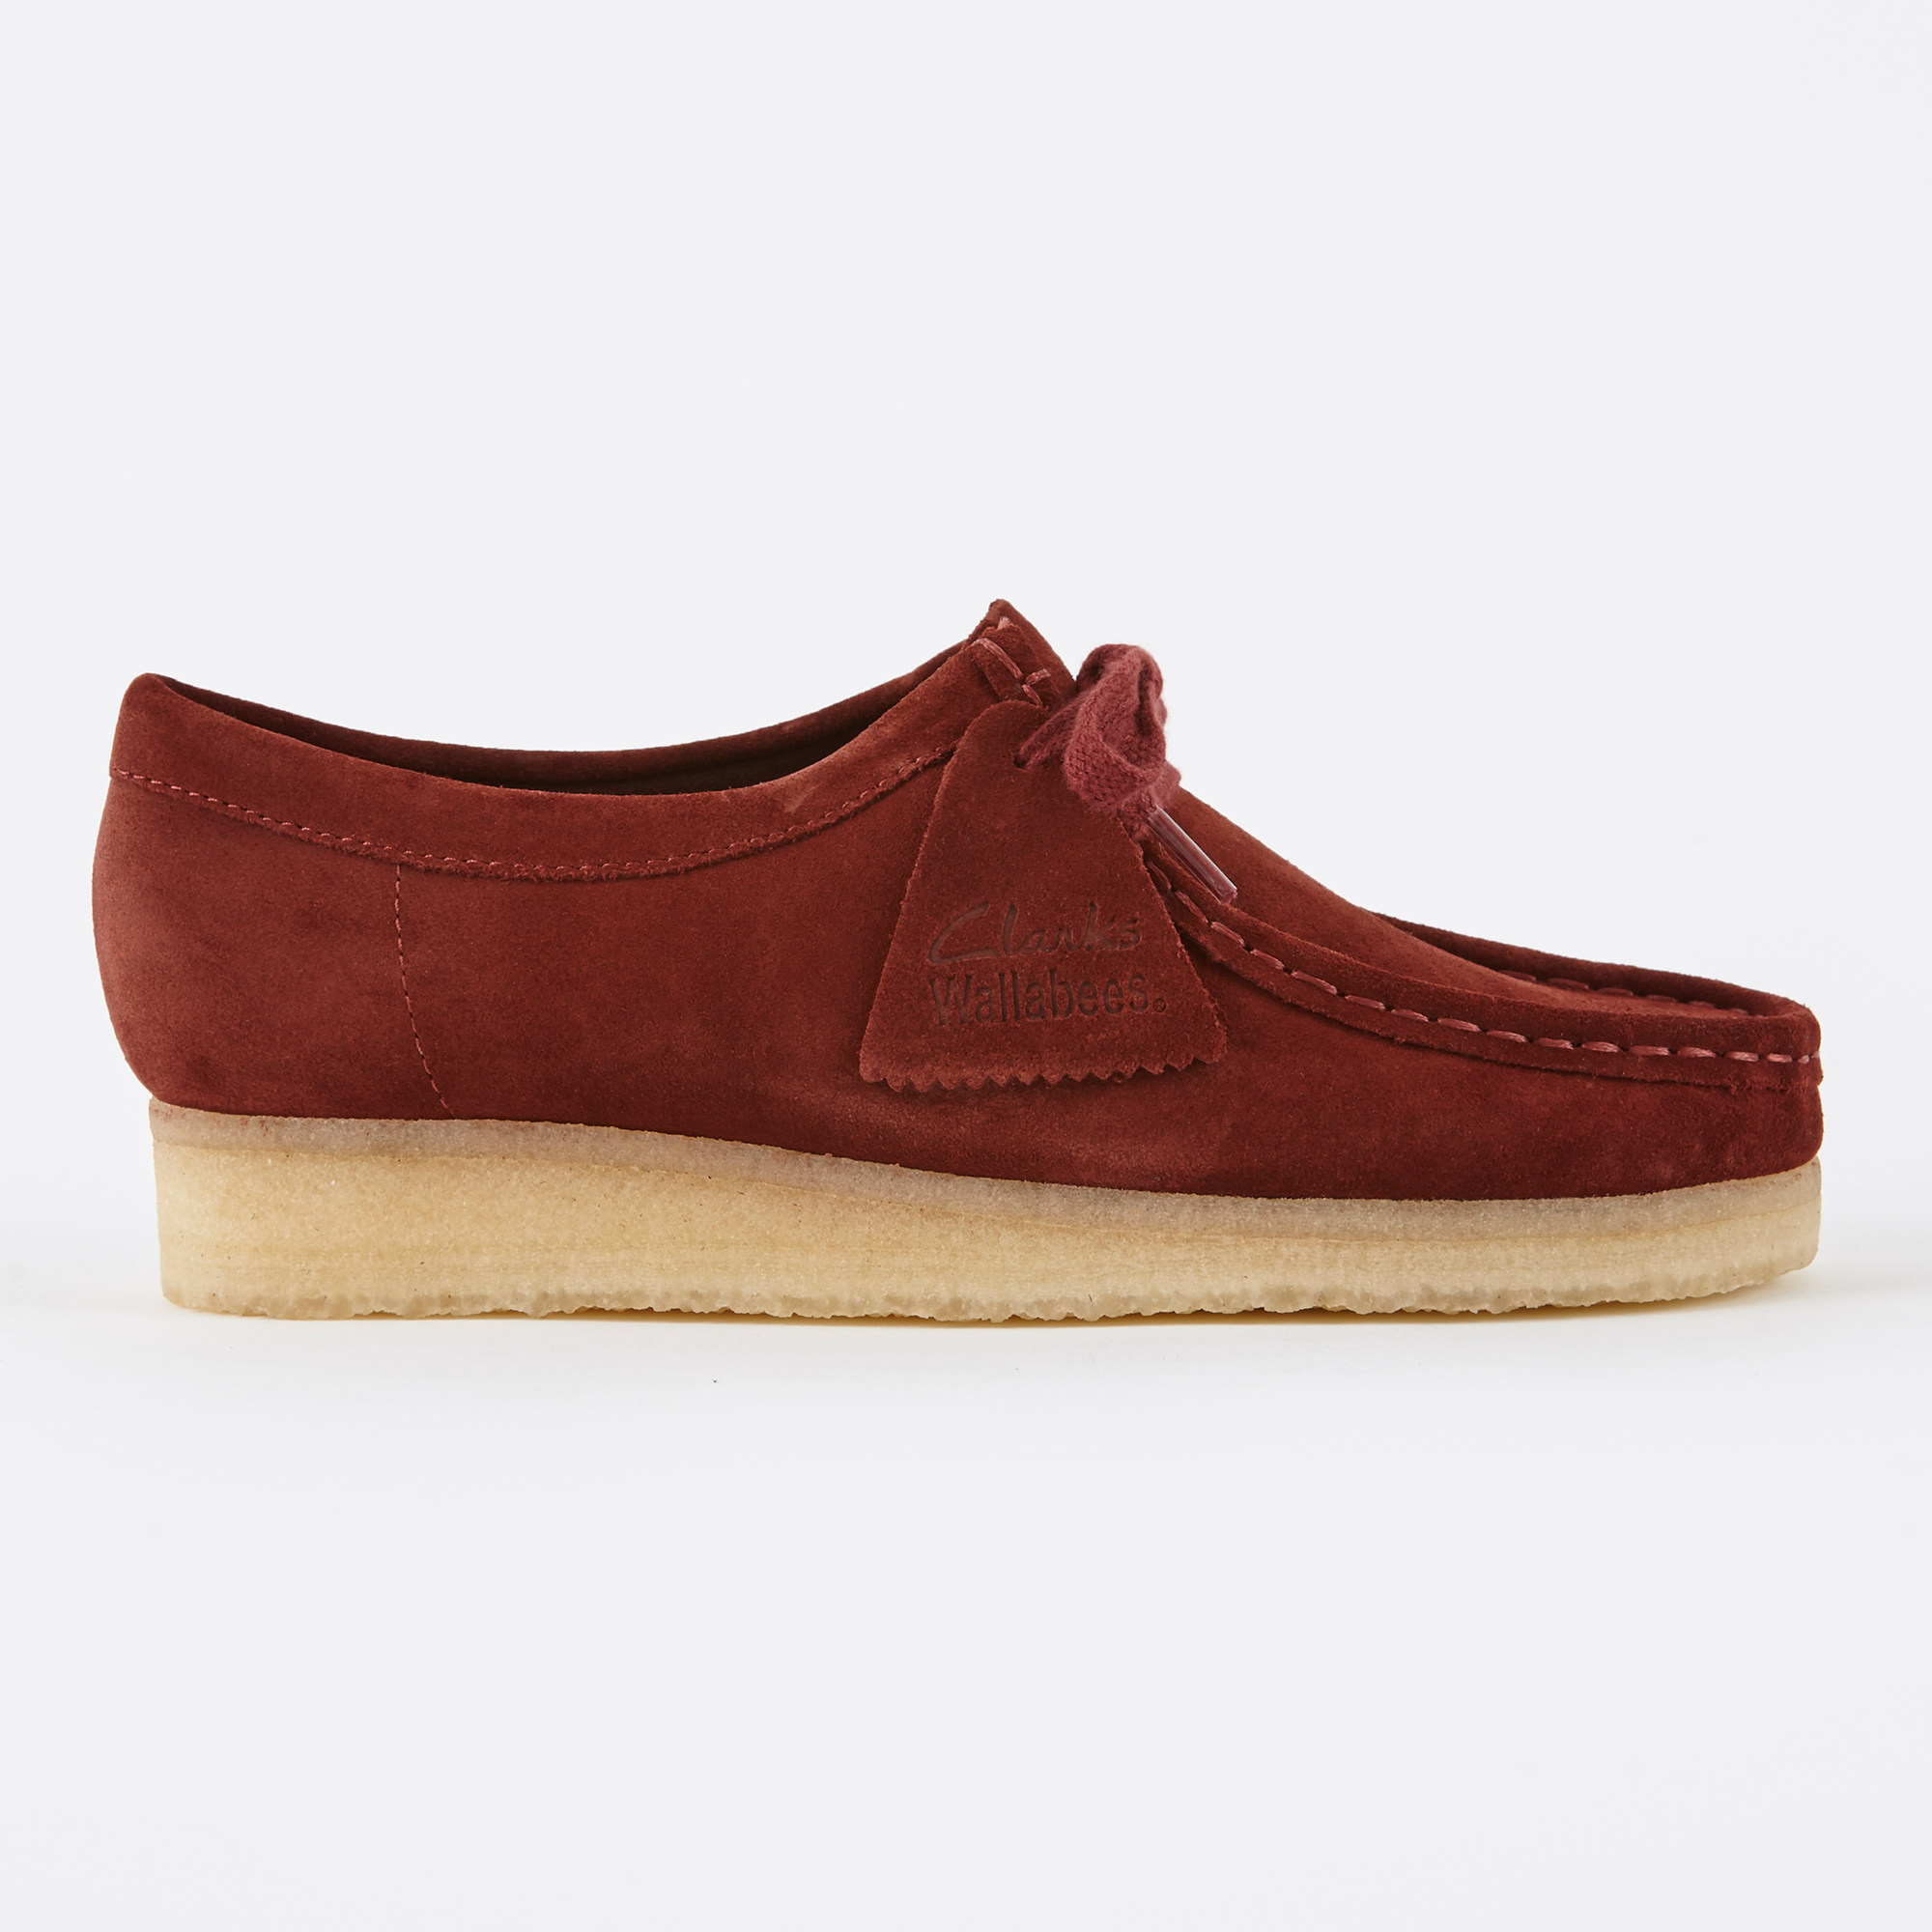 quality design 69d46 48bb3 Clarks Wallabee - Nut Brown Suede